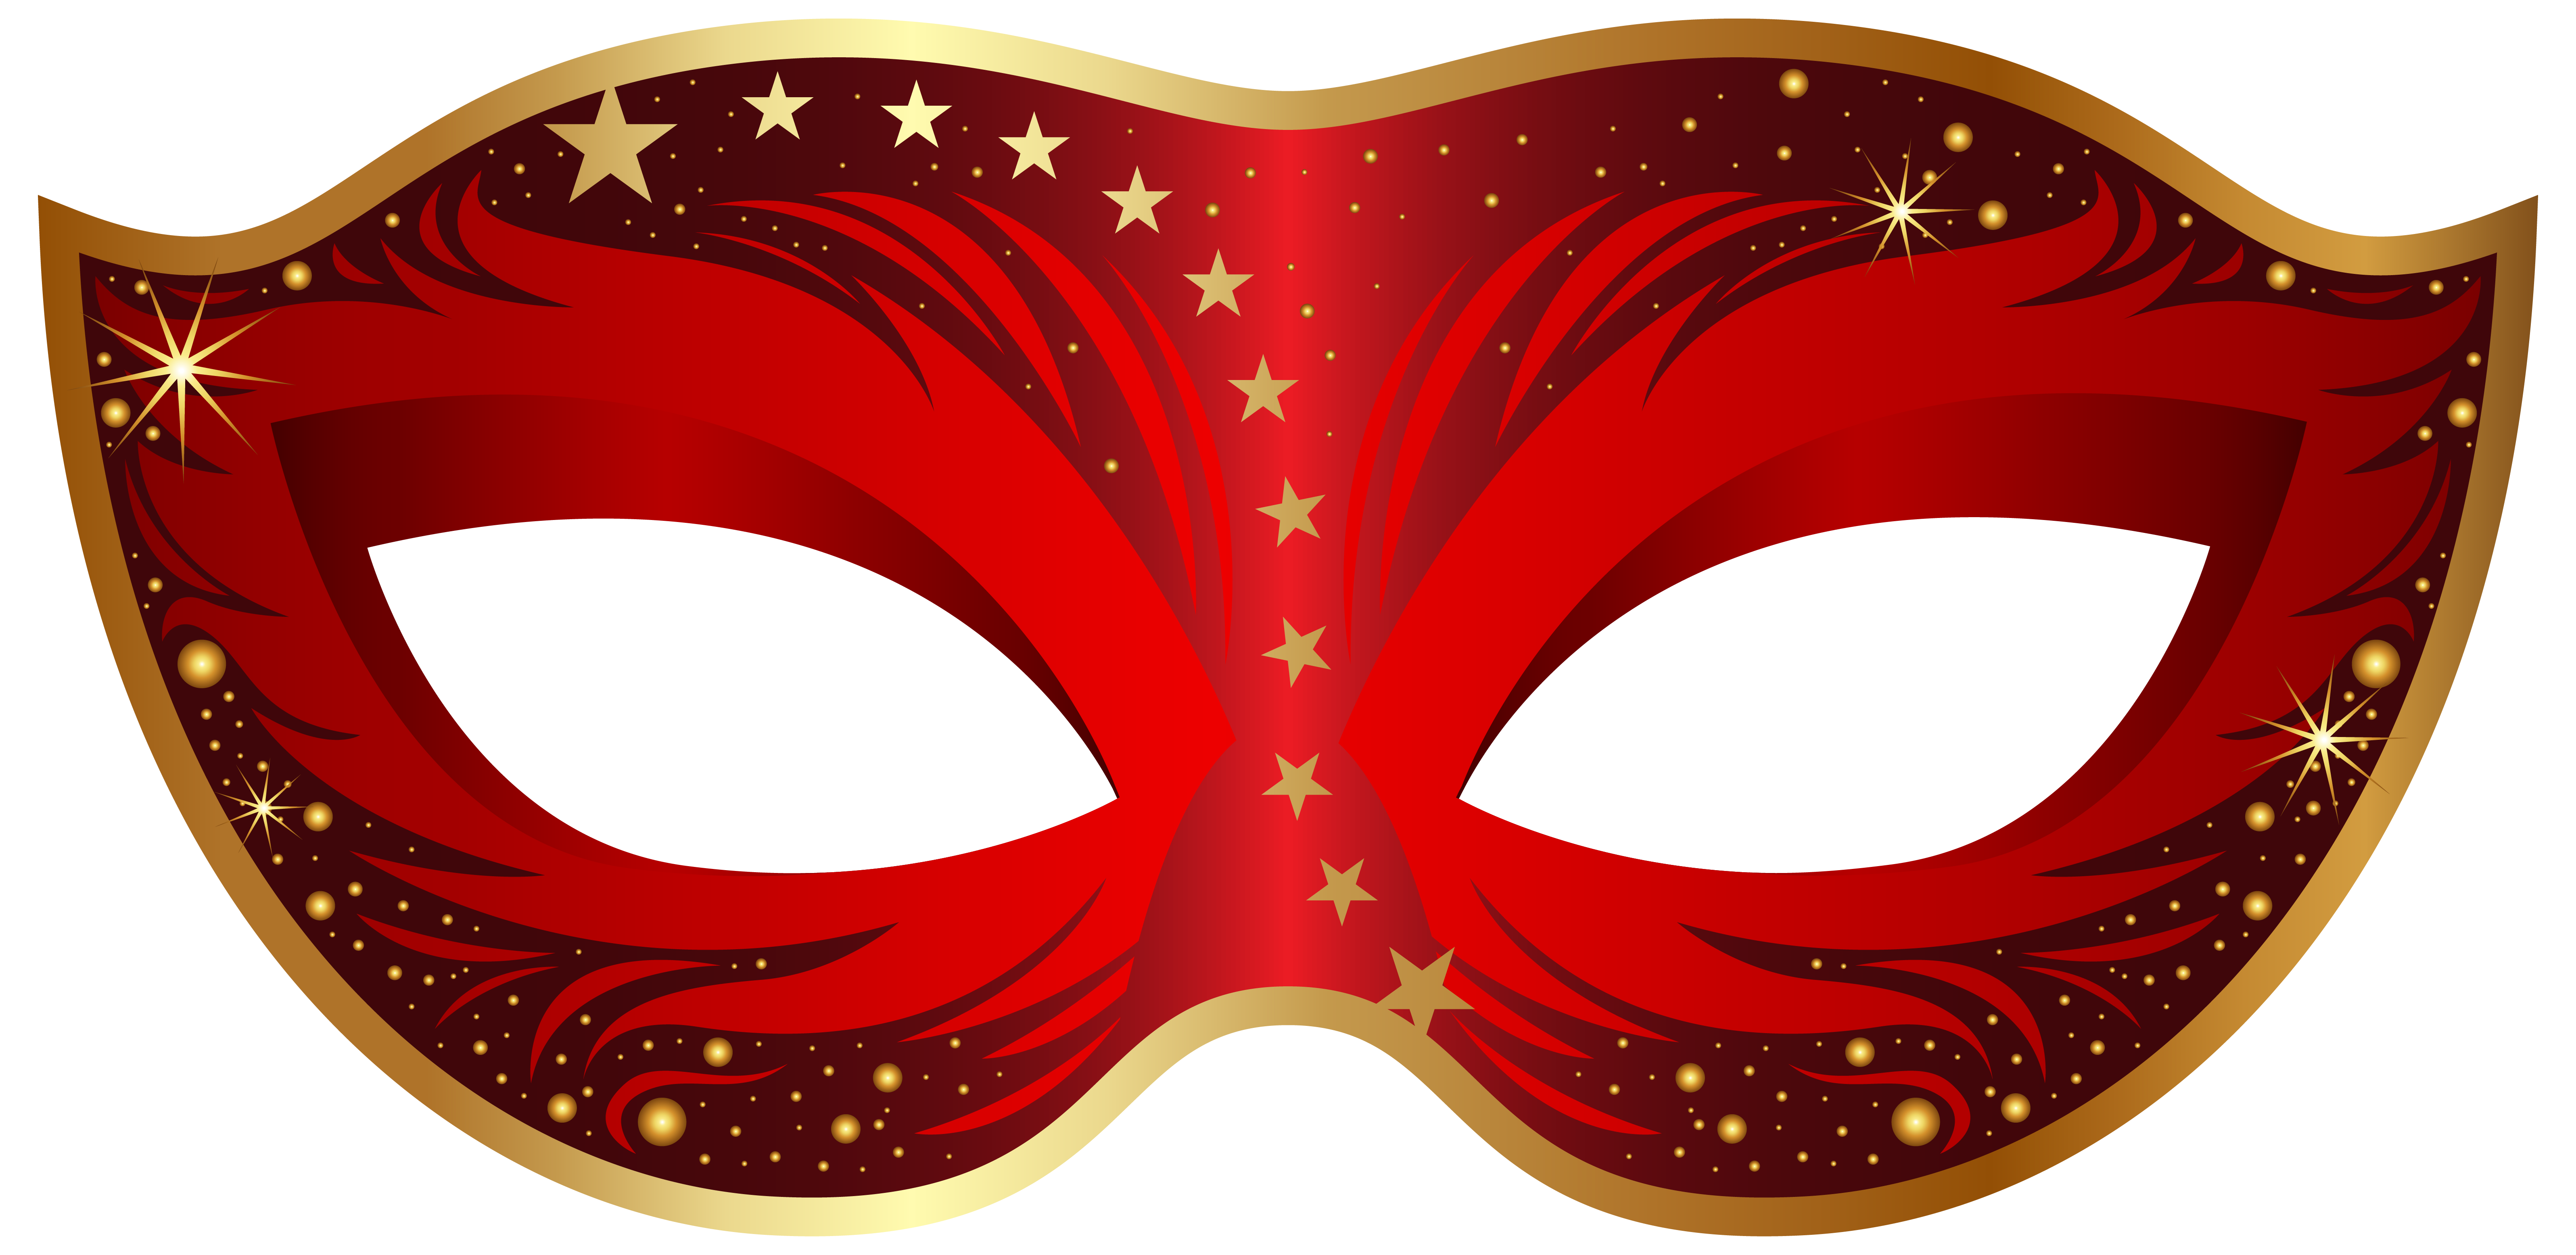 Mask clipart boy. Carnival png picture calendario